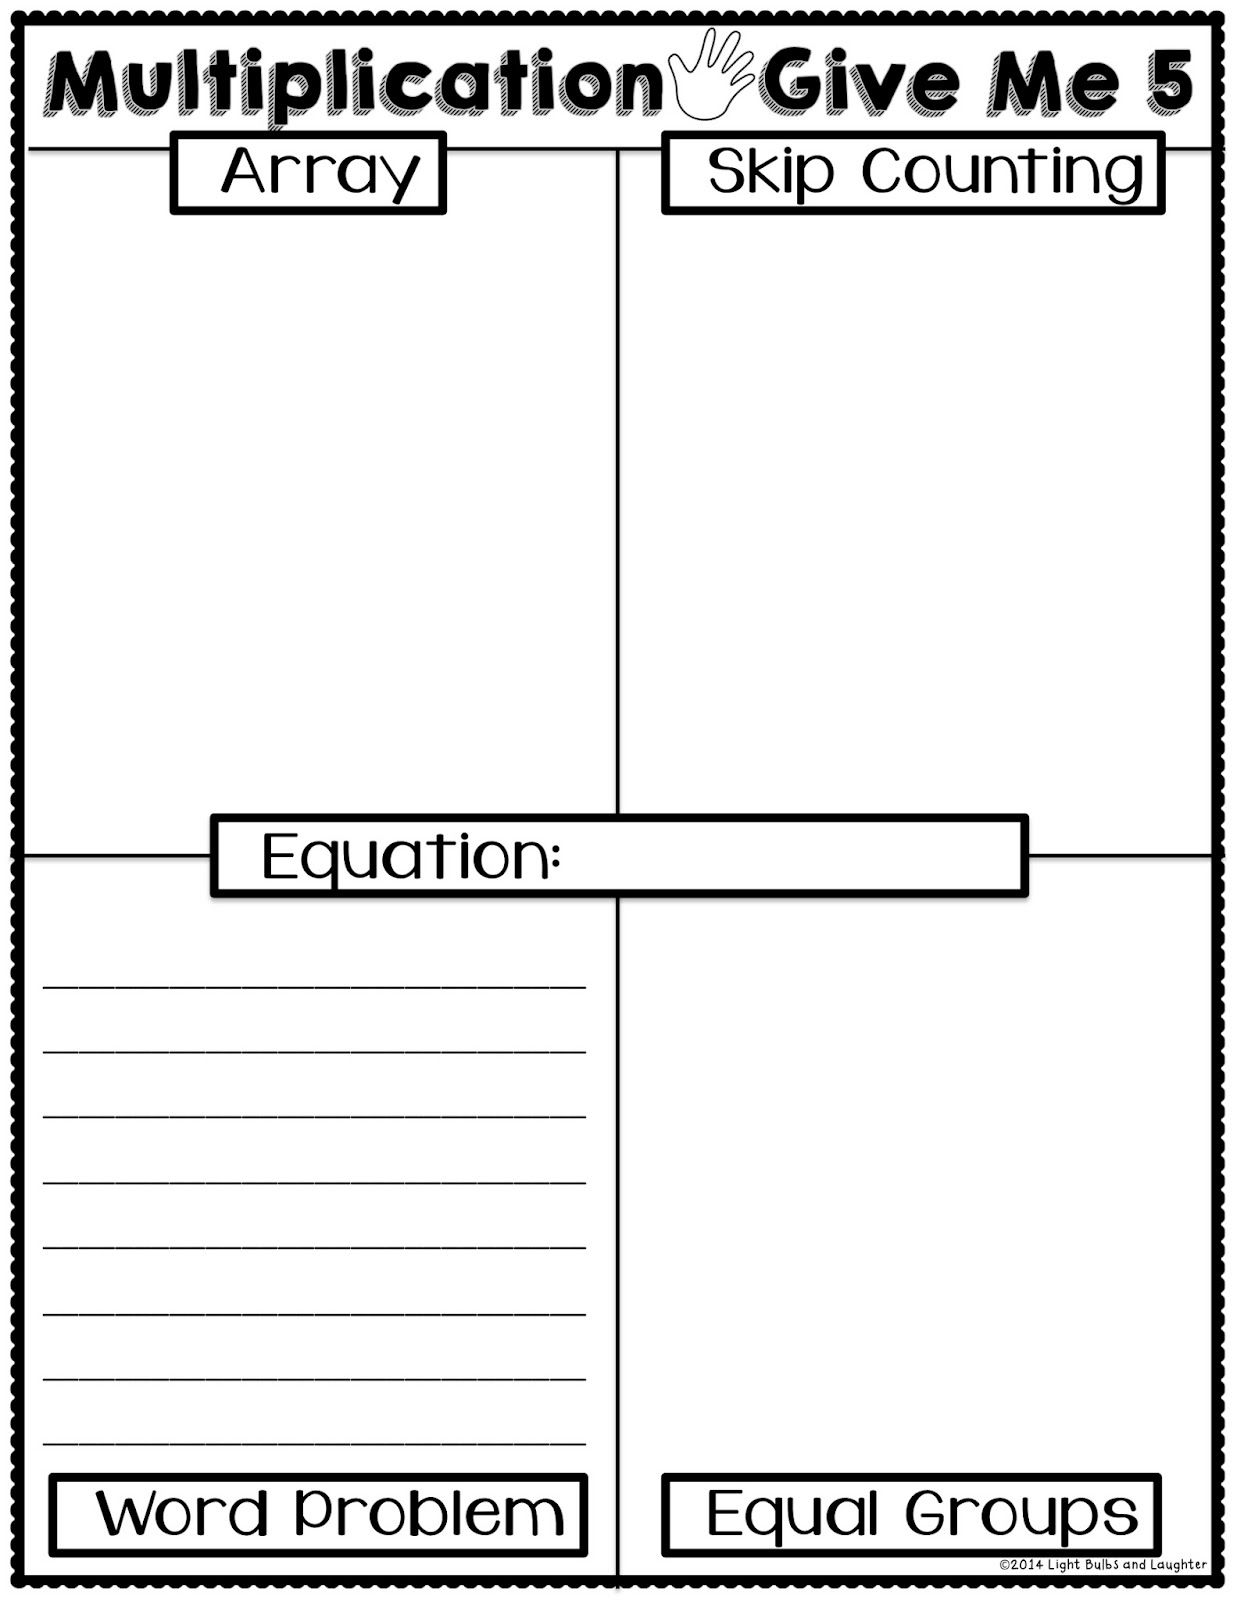 worksheet Light Me Up Math Worksheet multiplication give me 5 worksheet and poster free how students light bulbs laughter ways to represent or solve a problem